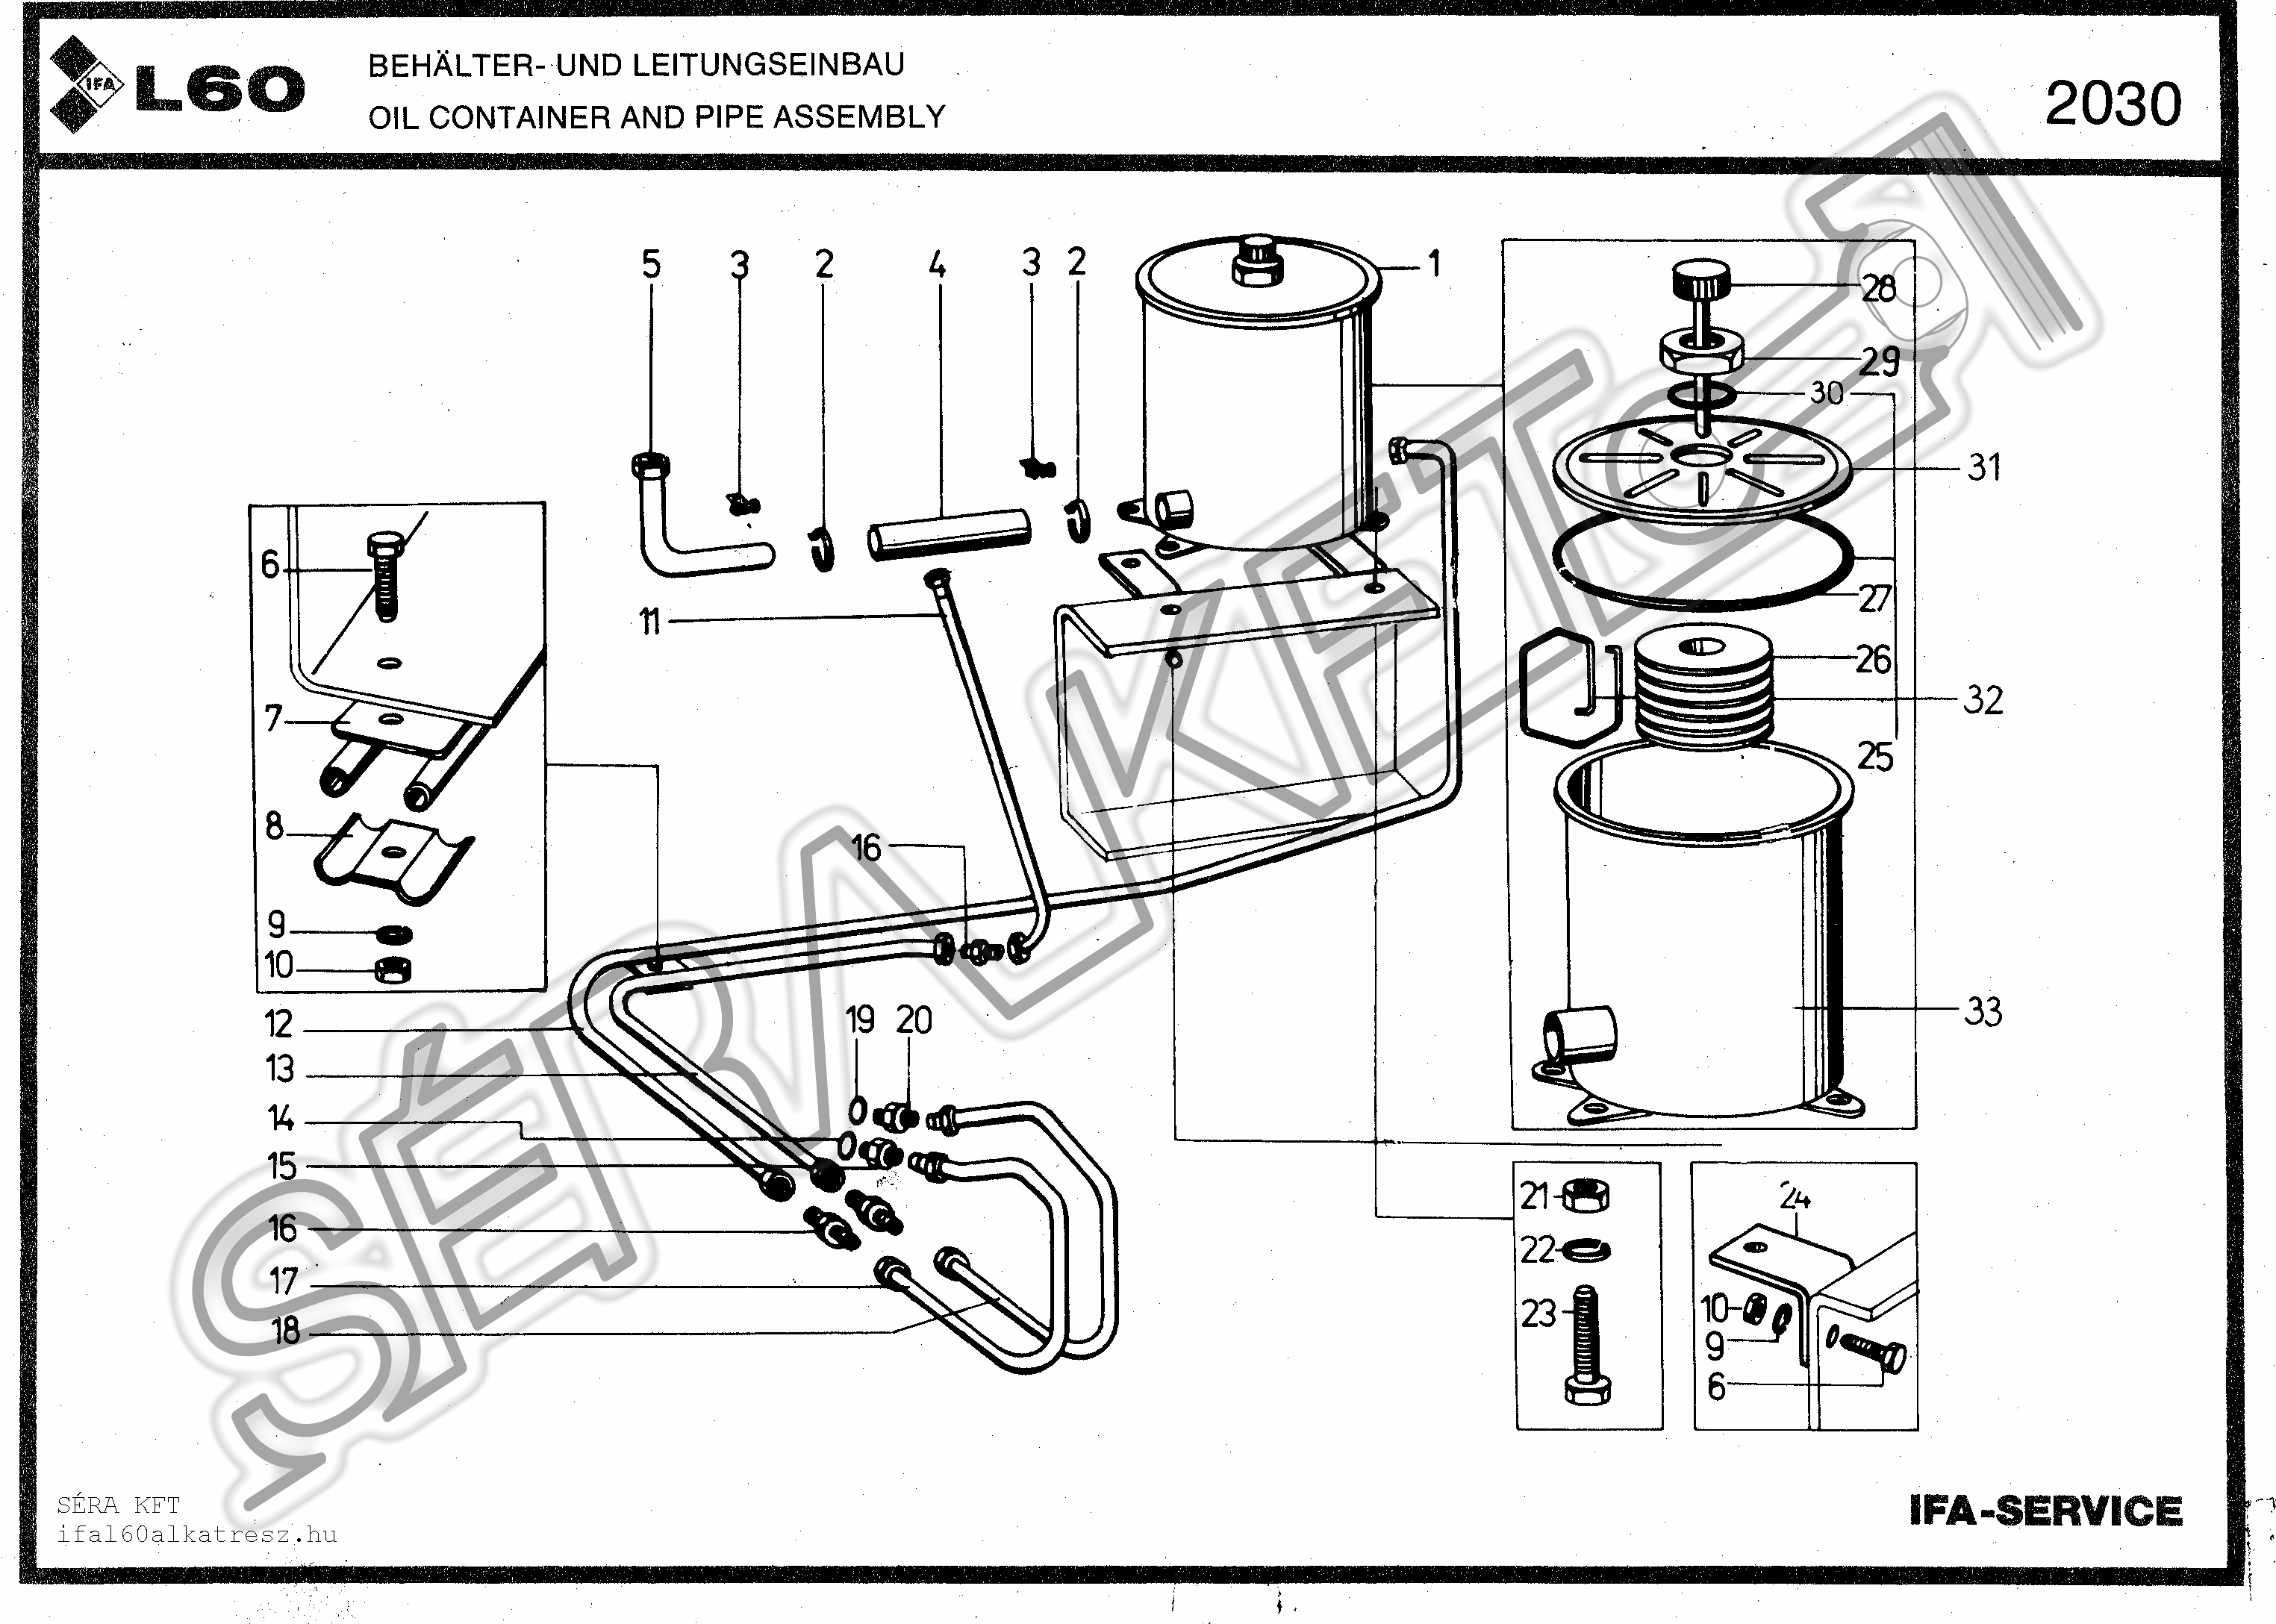 Oil tank and pipe assembly